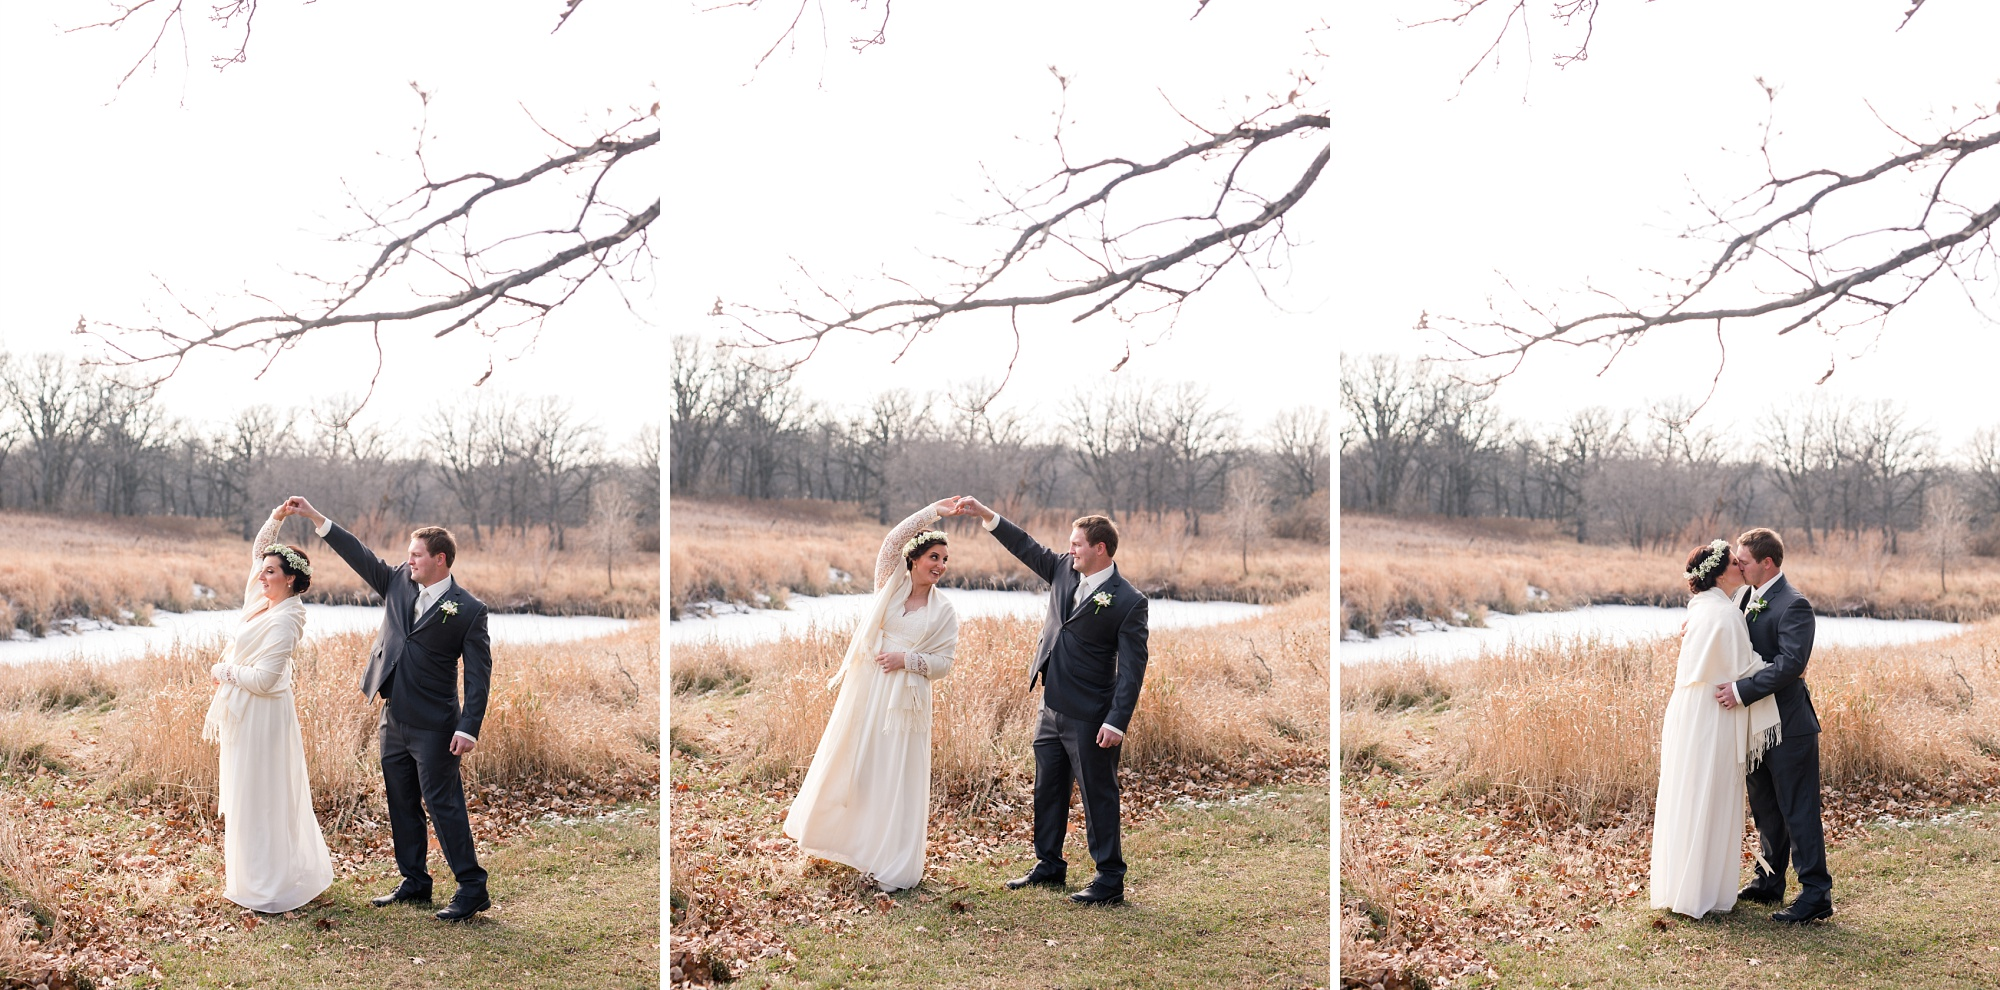 Amber Langerud_Rustic Oaks, MN winter barn wedding_0519.jpg